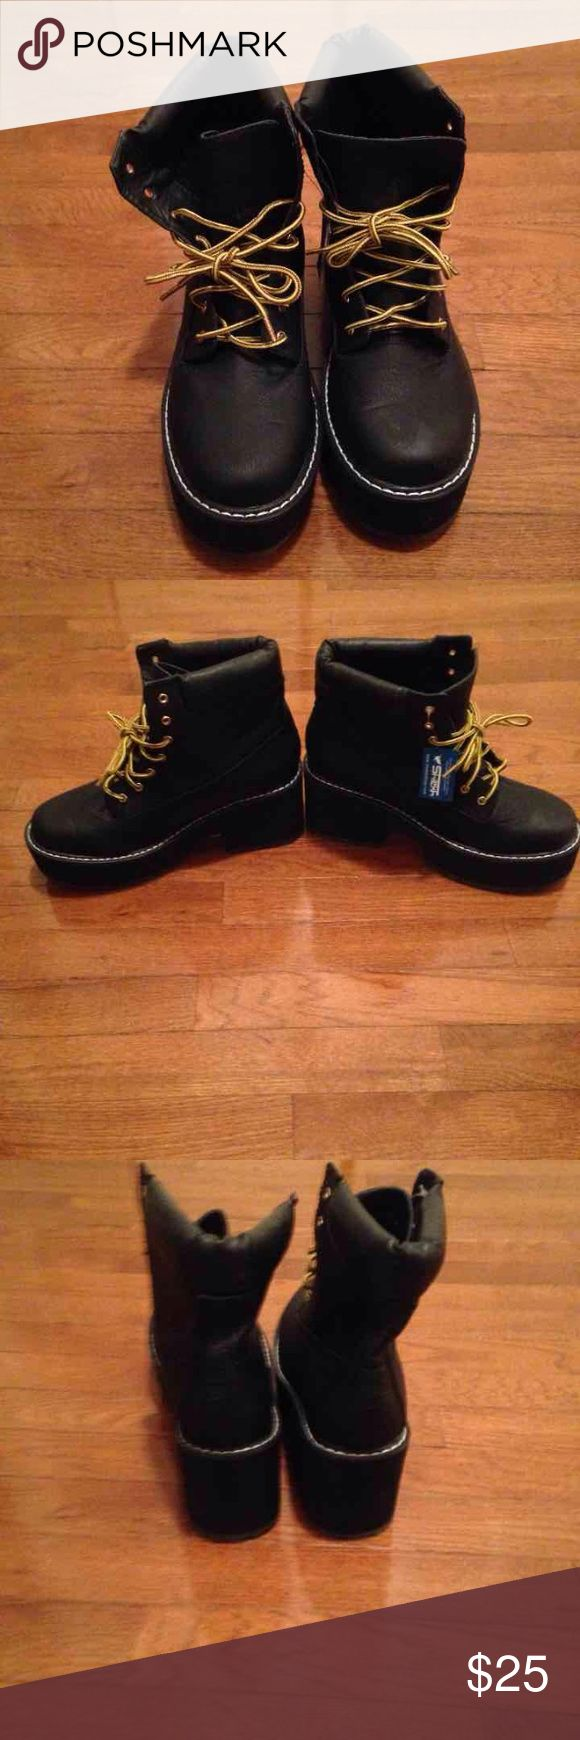 Platform Chelsea Boots Brand new w/ tags from Shiekh Shoes never worn. Laces are yellow and brown and the the shoes itself are black. Platform boots shiekh Shoes Lace Up Boots